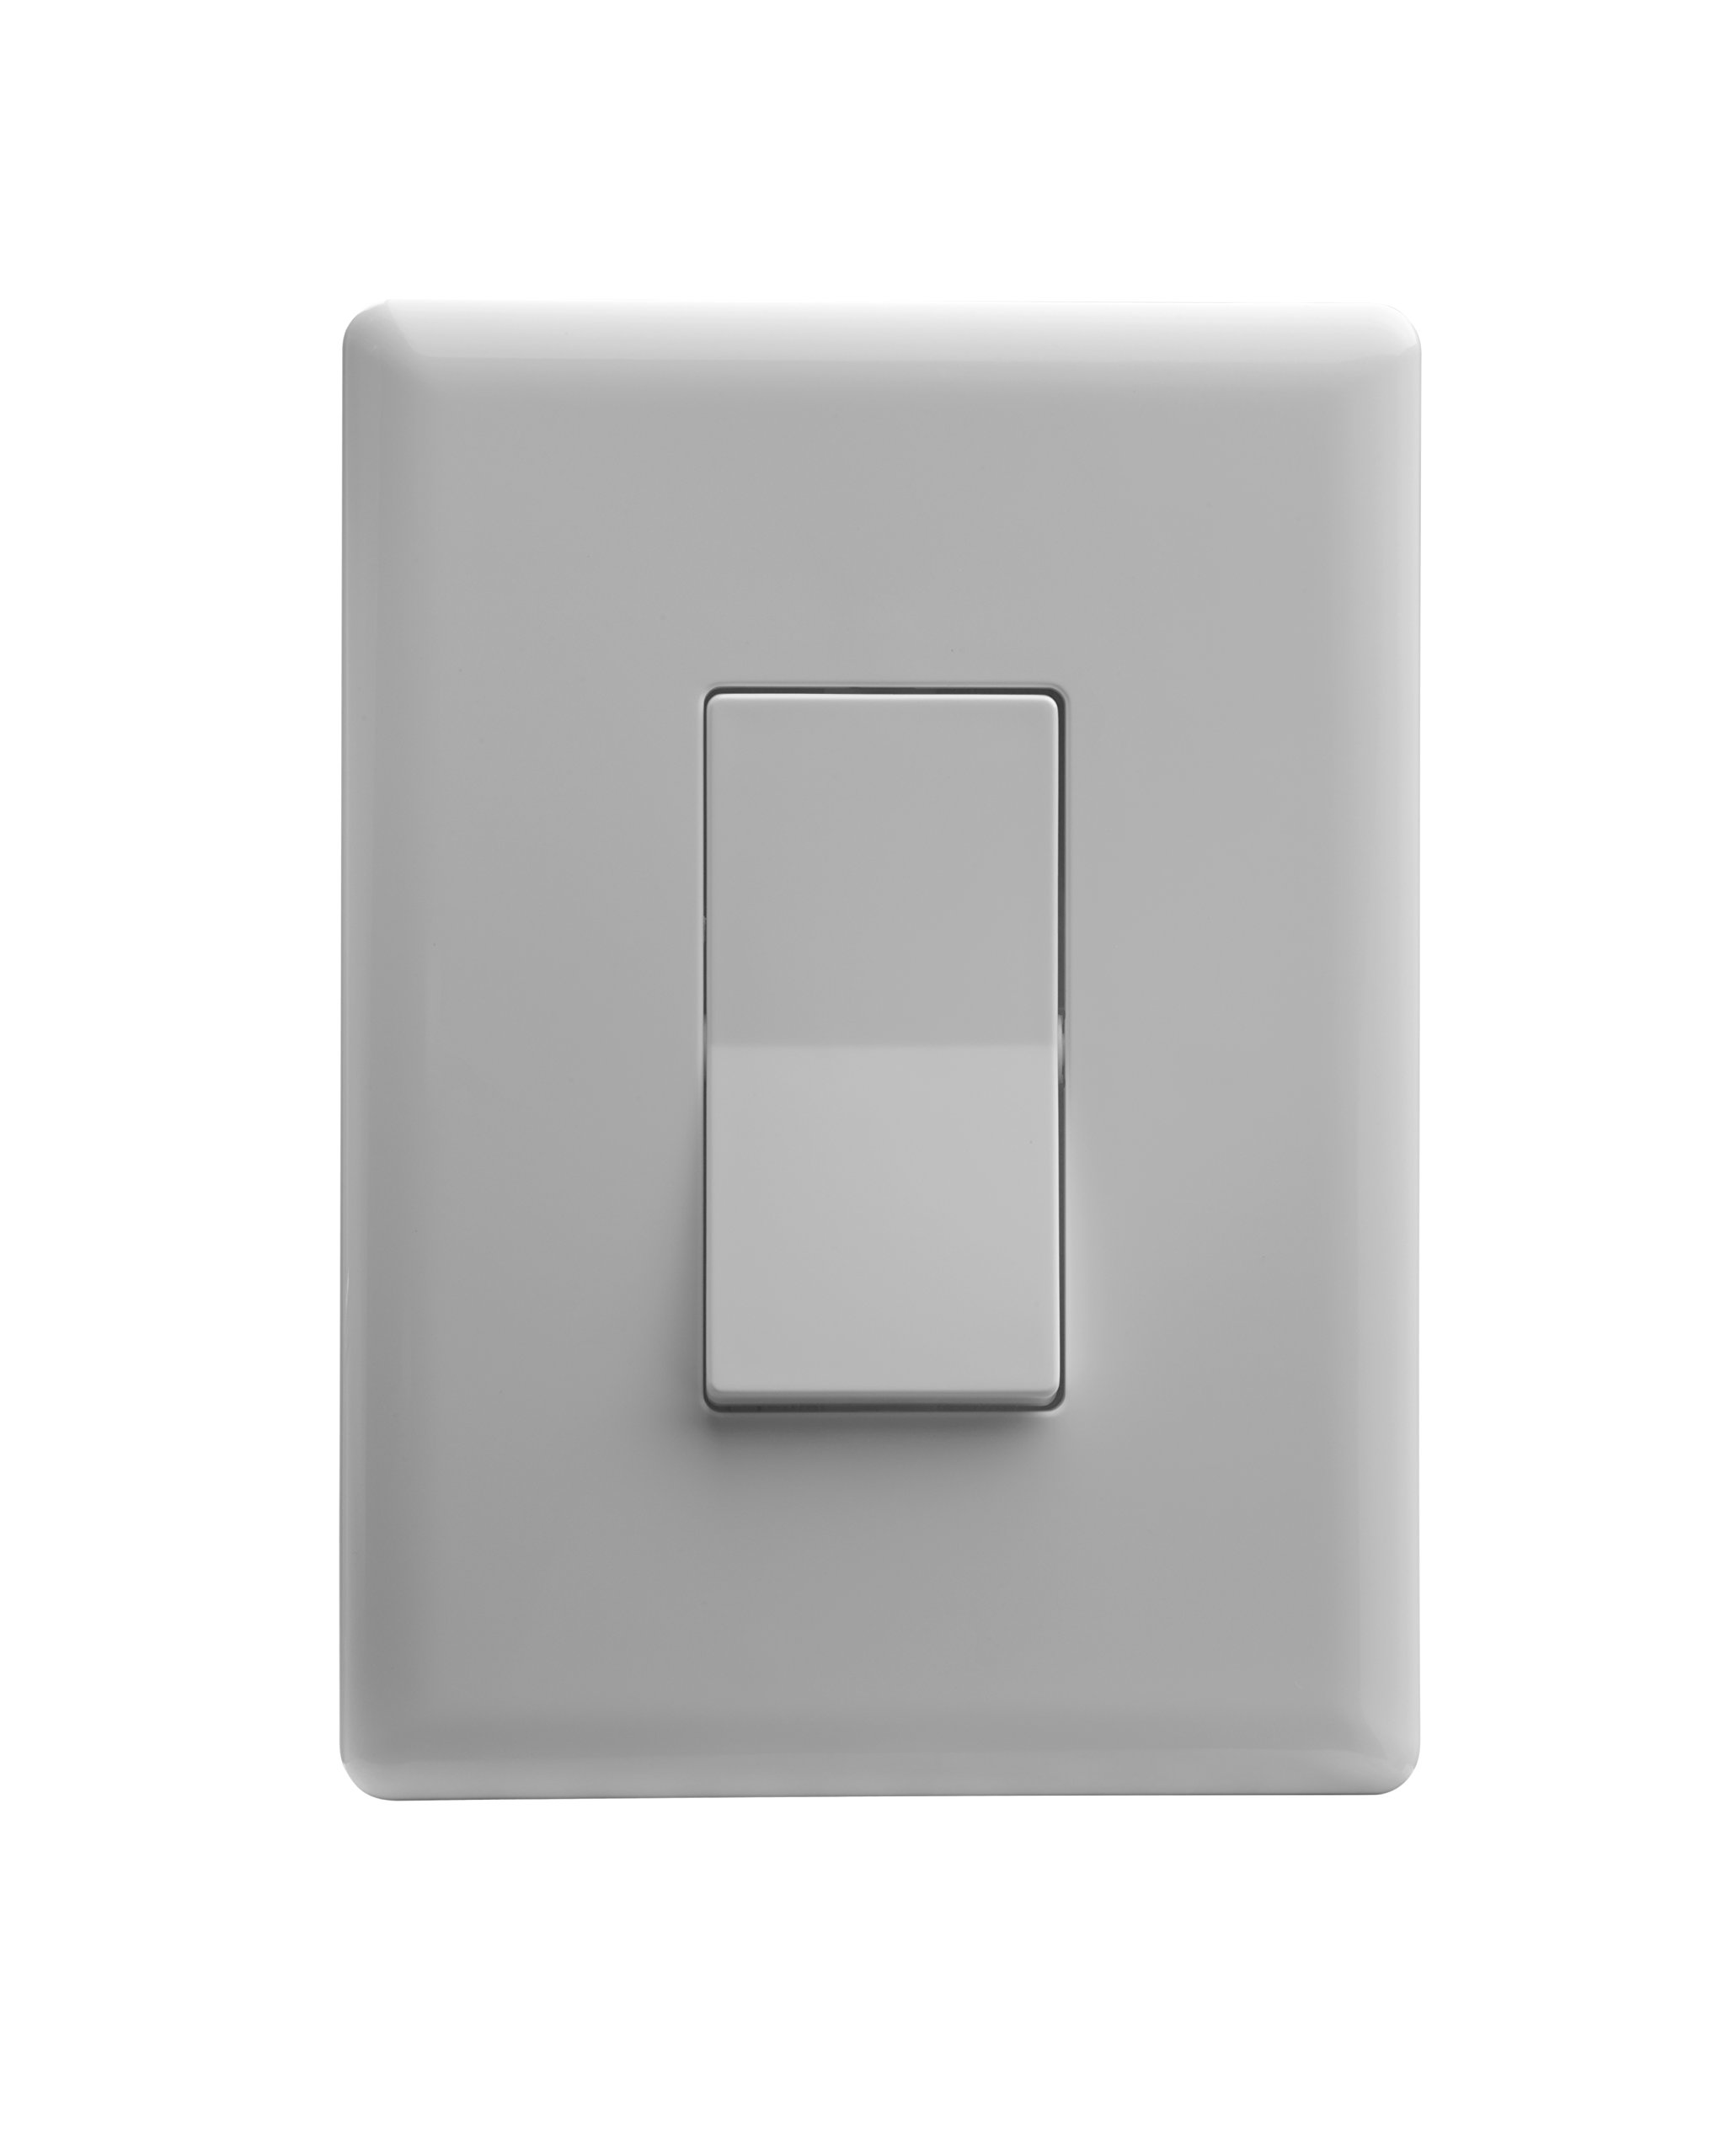 Home Automation Lighting, ZWAVE Plus Smart Switch By